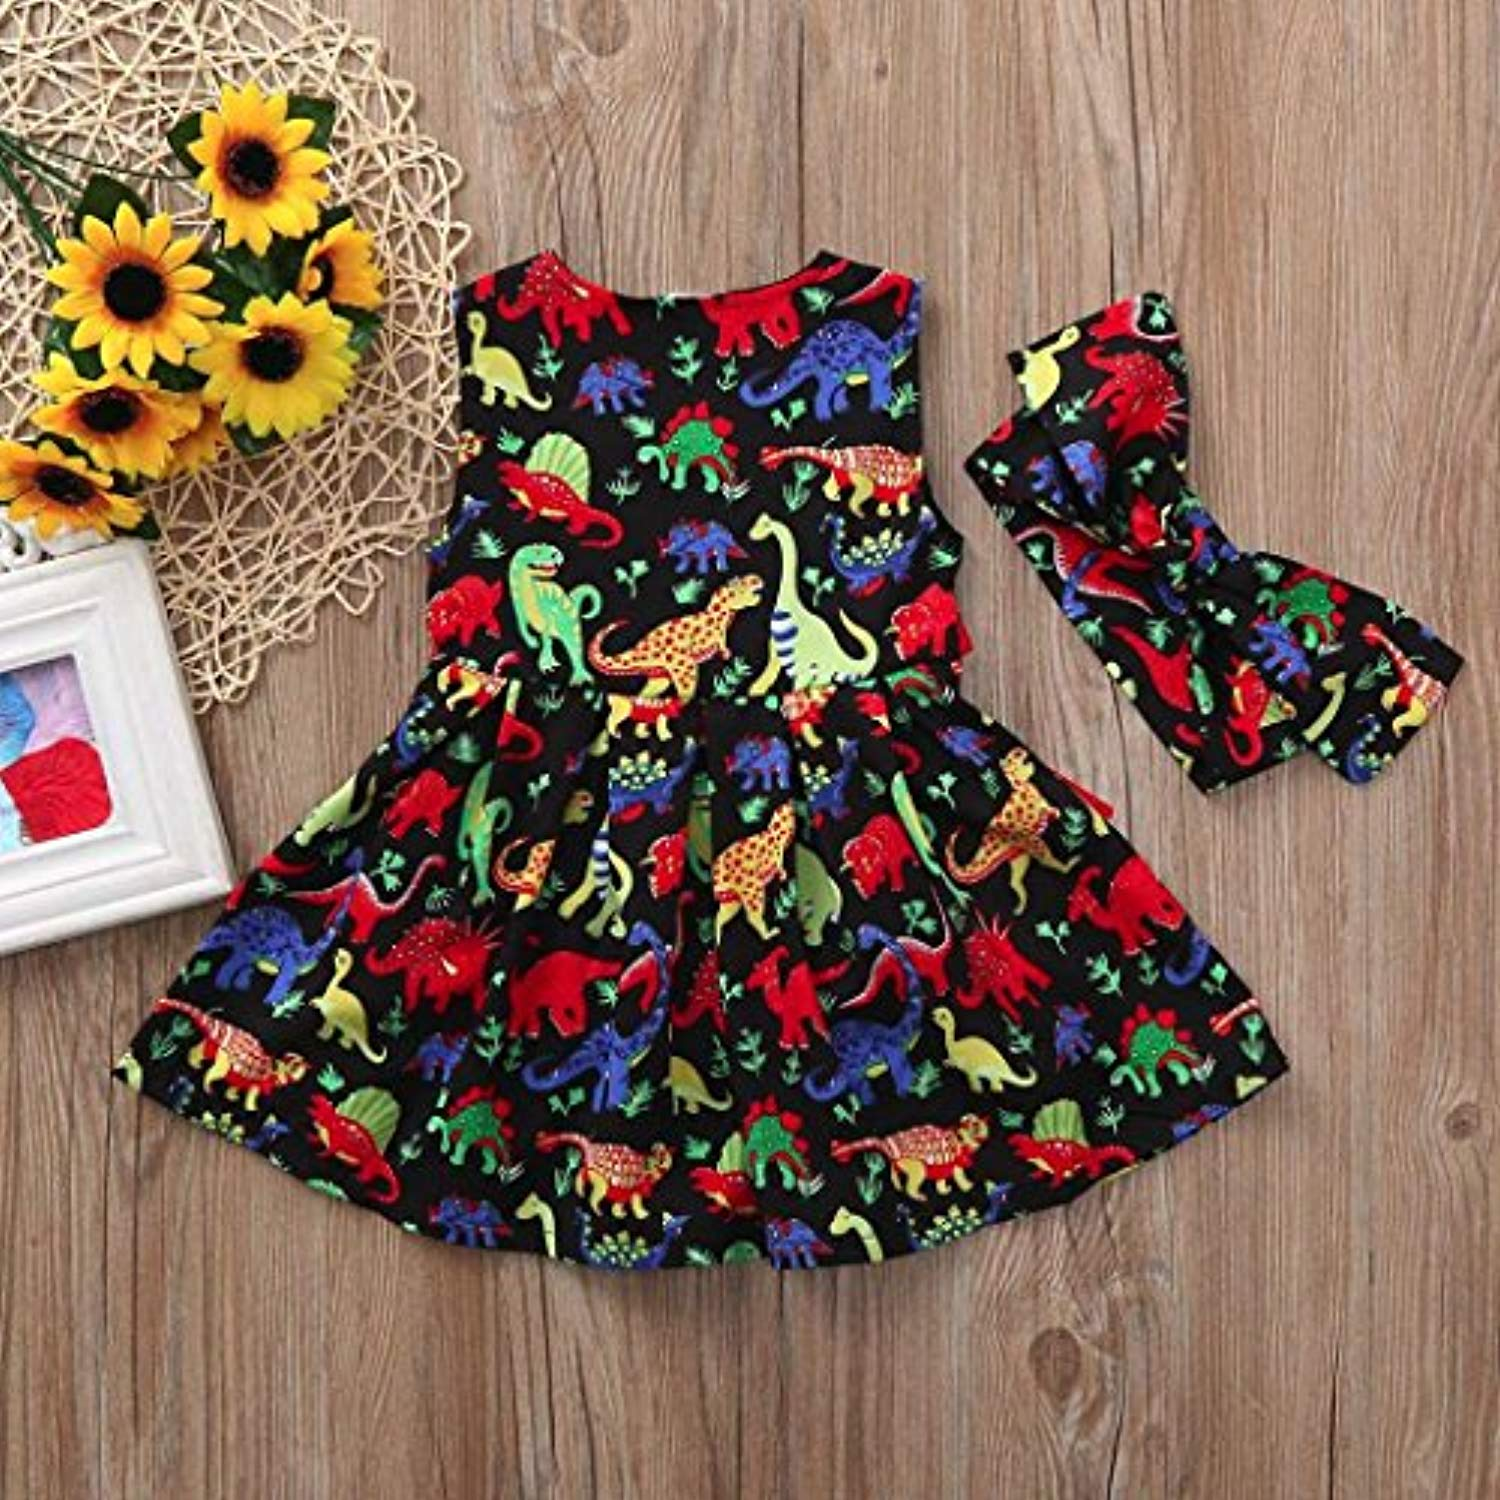 DORIC Toddler Baby Girls Cartoon Dinosaur Sleeveless Dress+Headband Clothes Outfits - Ufumbuzi - Home